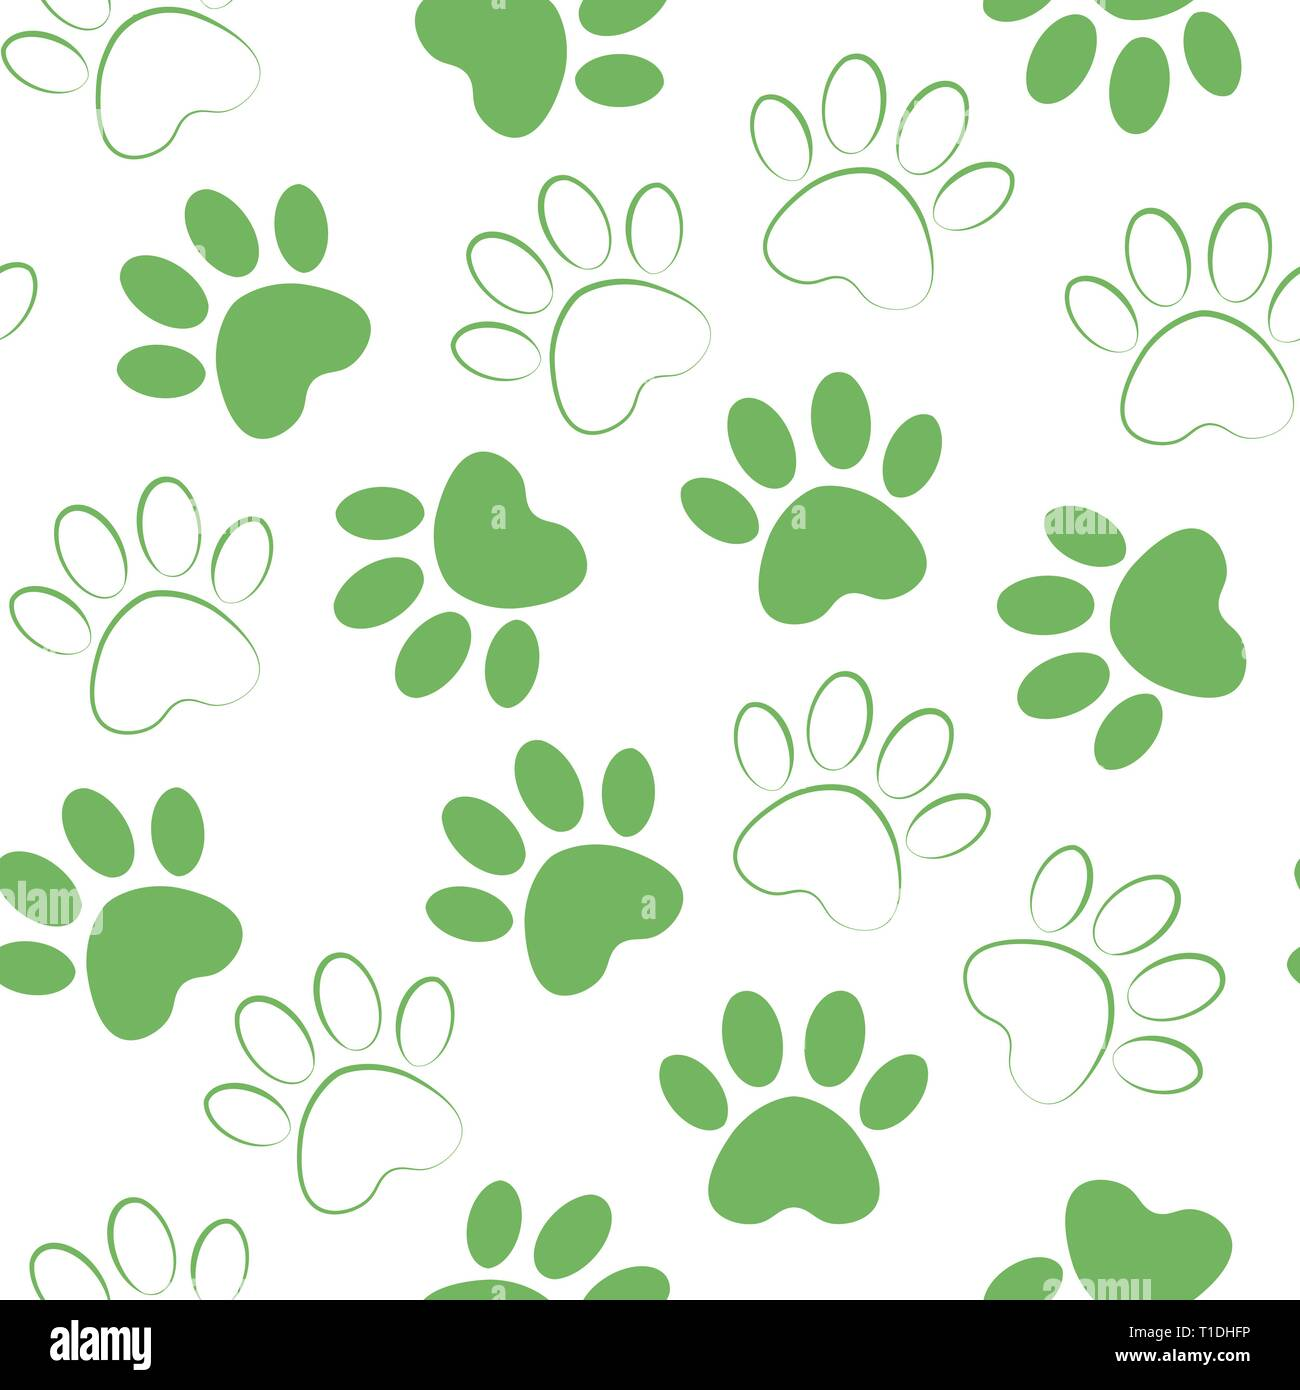 5286fc0f618c backdrop with silhouettes of cat or dog footprint. Vector illustration  animal paw track pattern. Paw print seamless.